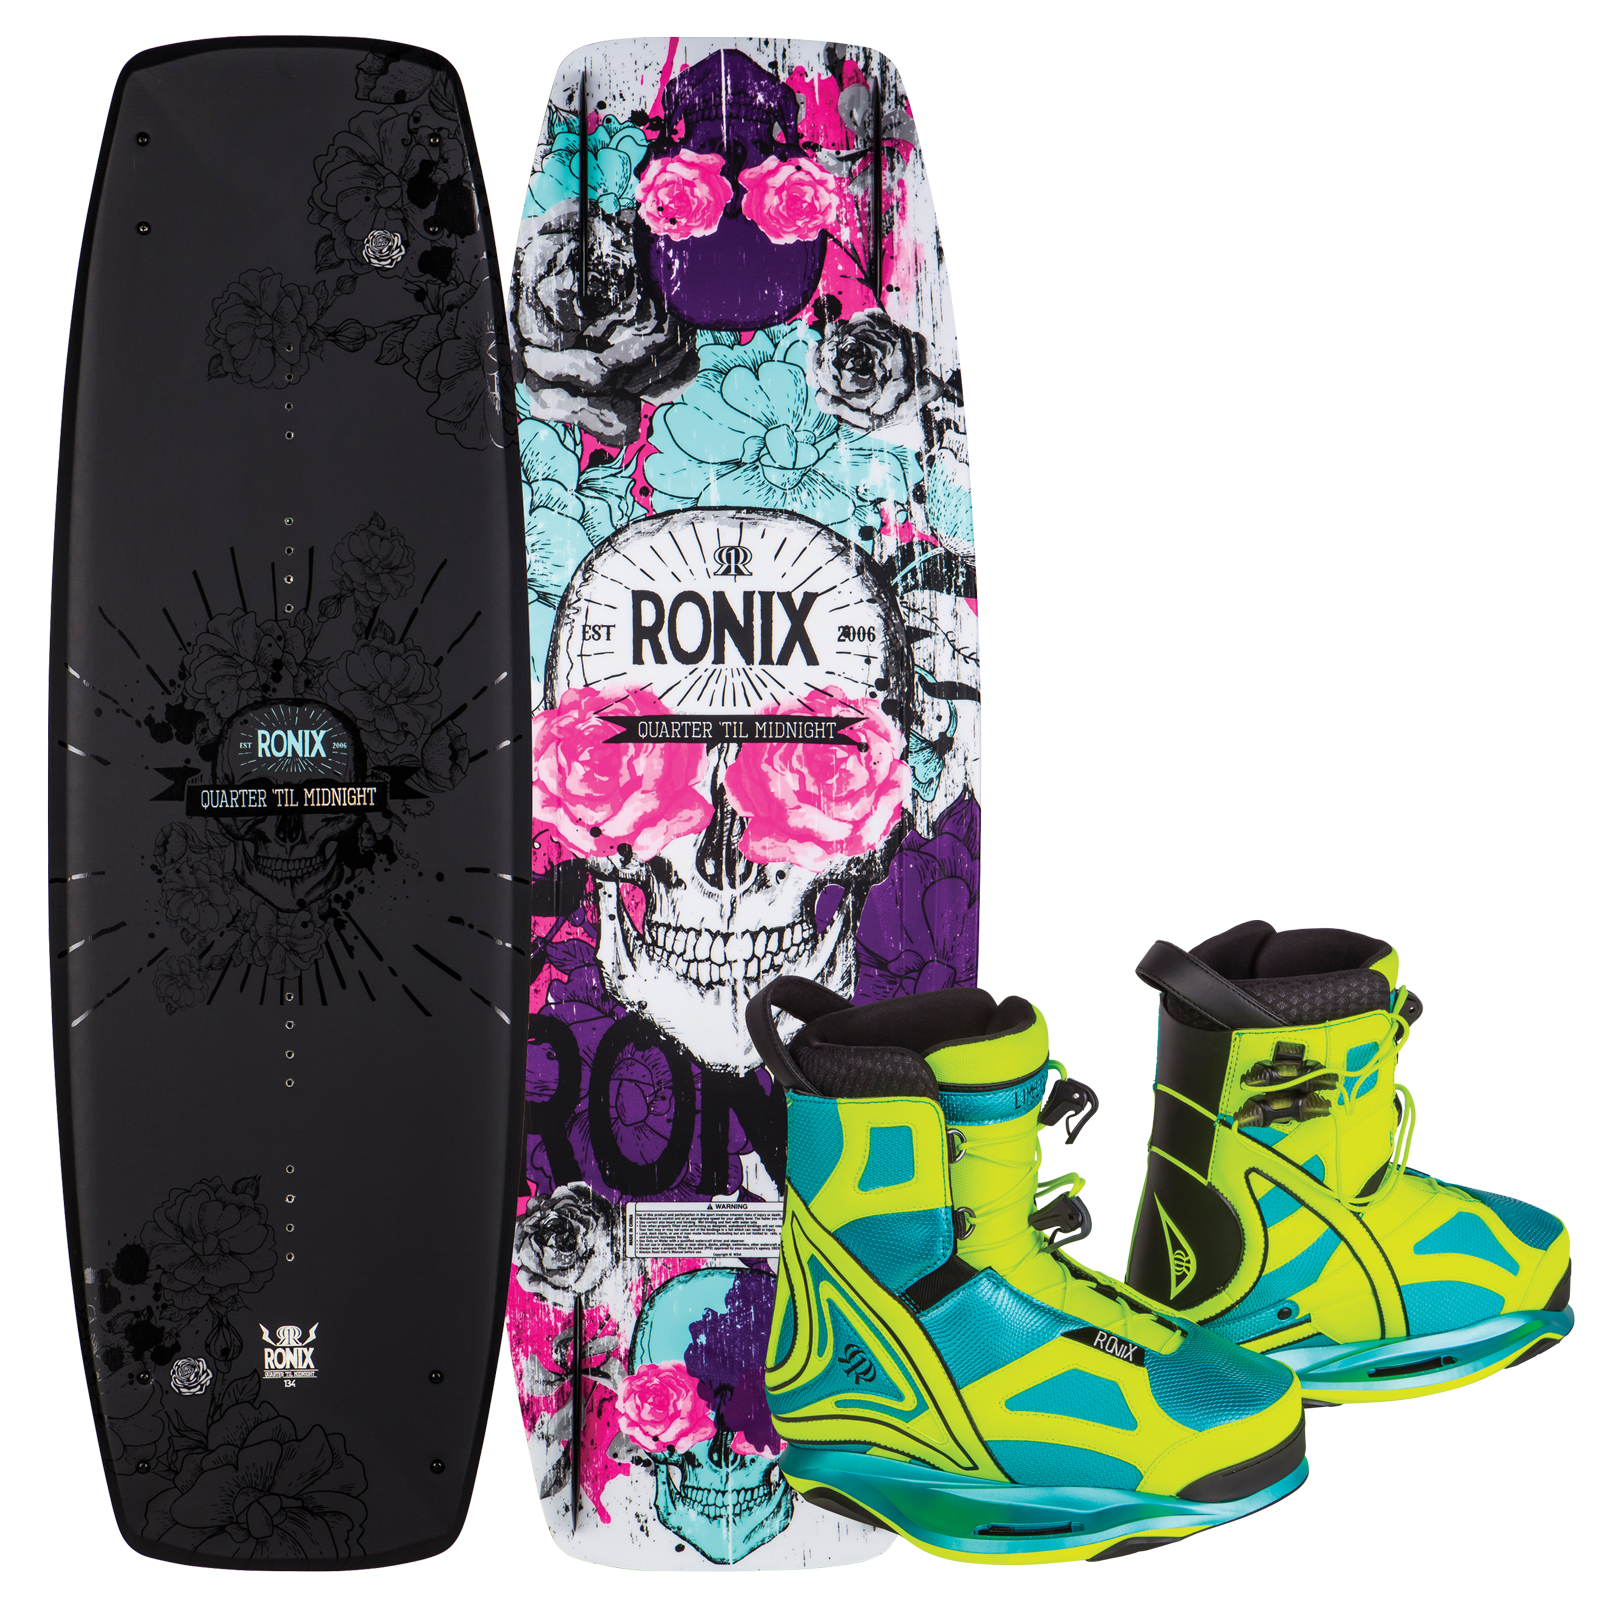 QUARTER 'TIL MIDNIGHT 129 W/ LIMELIGHT PACKAGE RONIX 2017